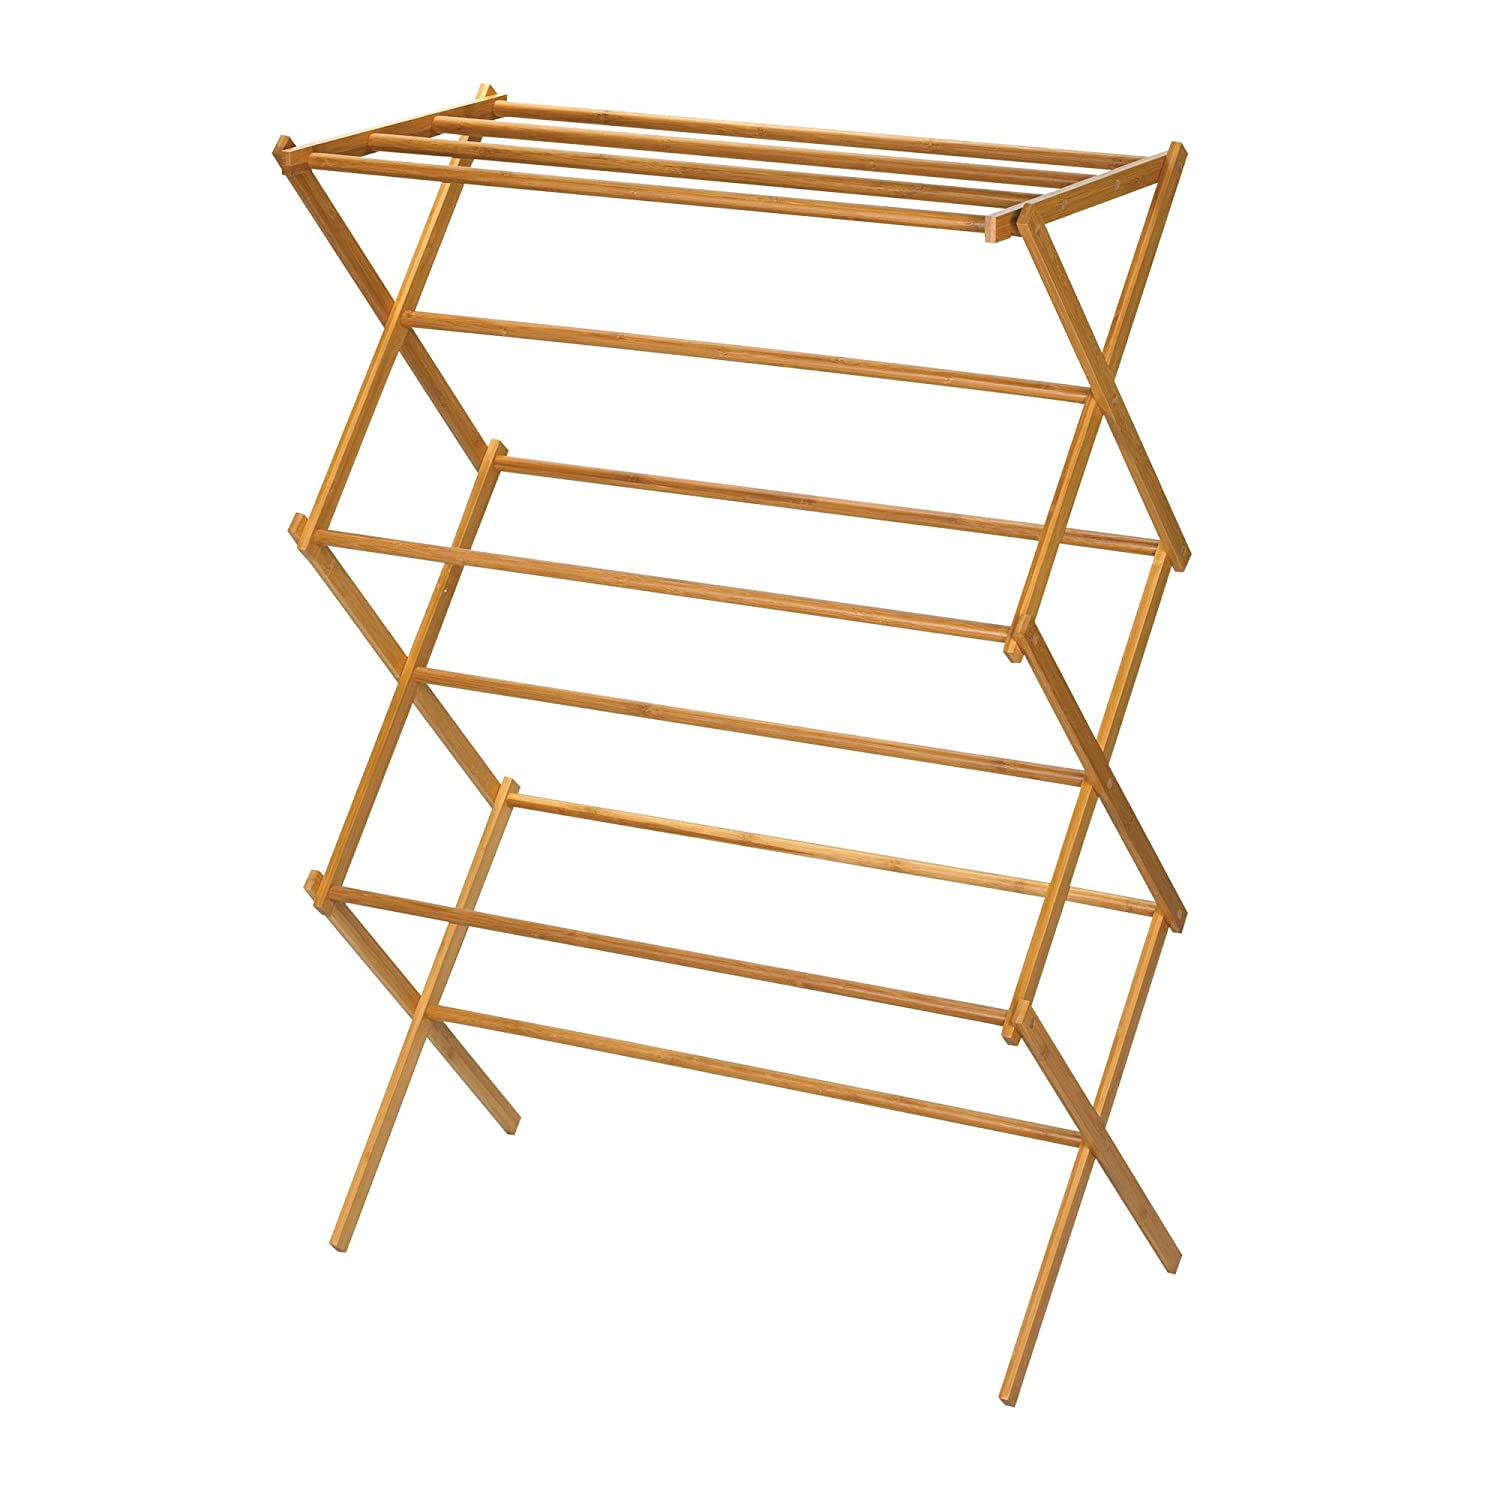 Uncategorized Hanging Clothes Drying Rack shop amazon com drying rack household essentials 6524 tall indoor folding wooden clothes dry laundry and hang clothes